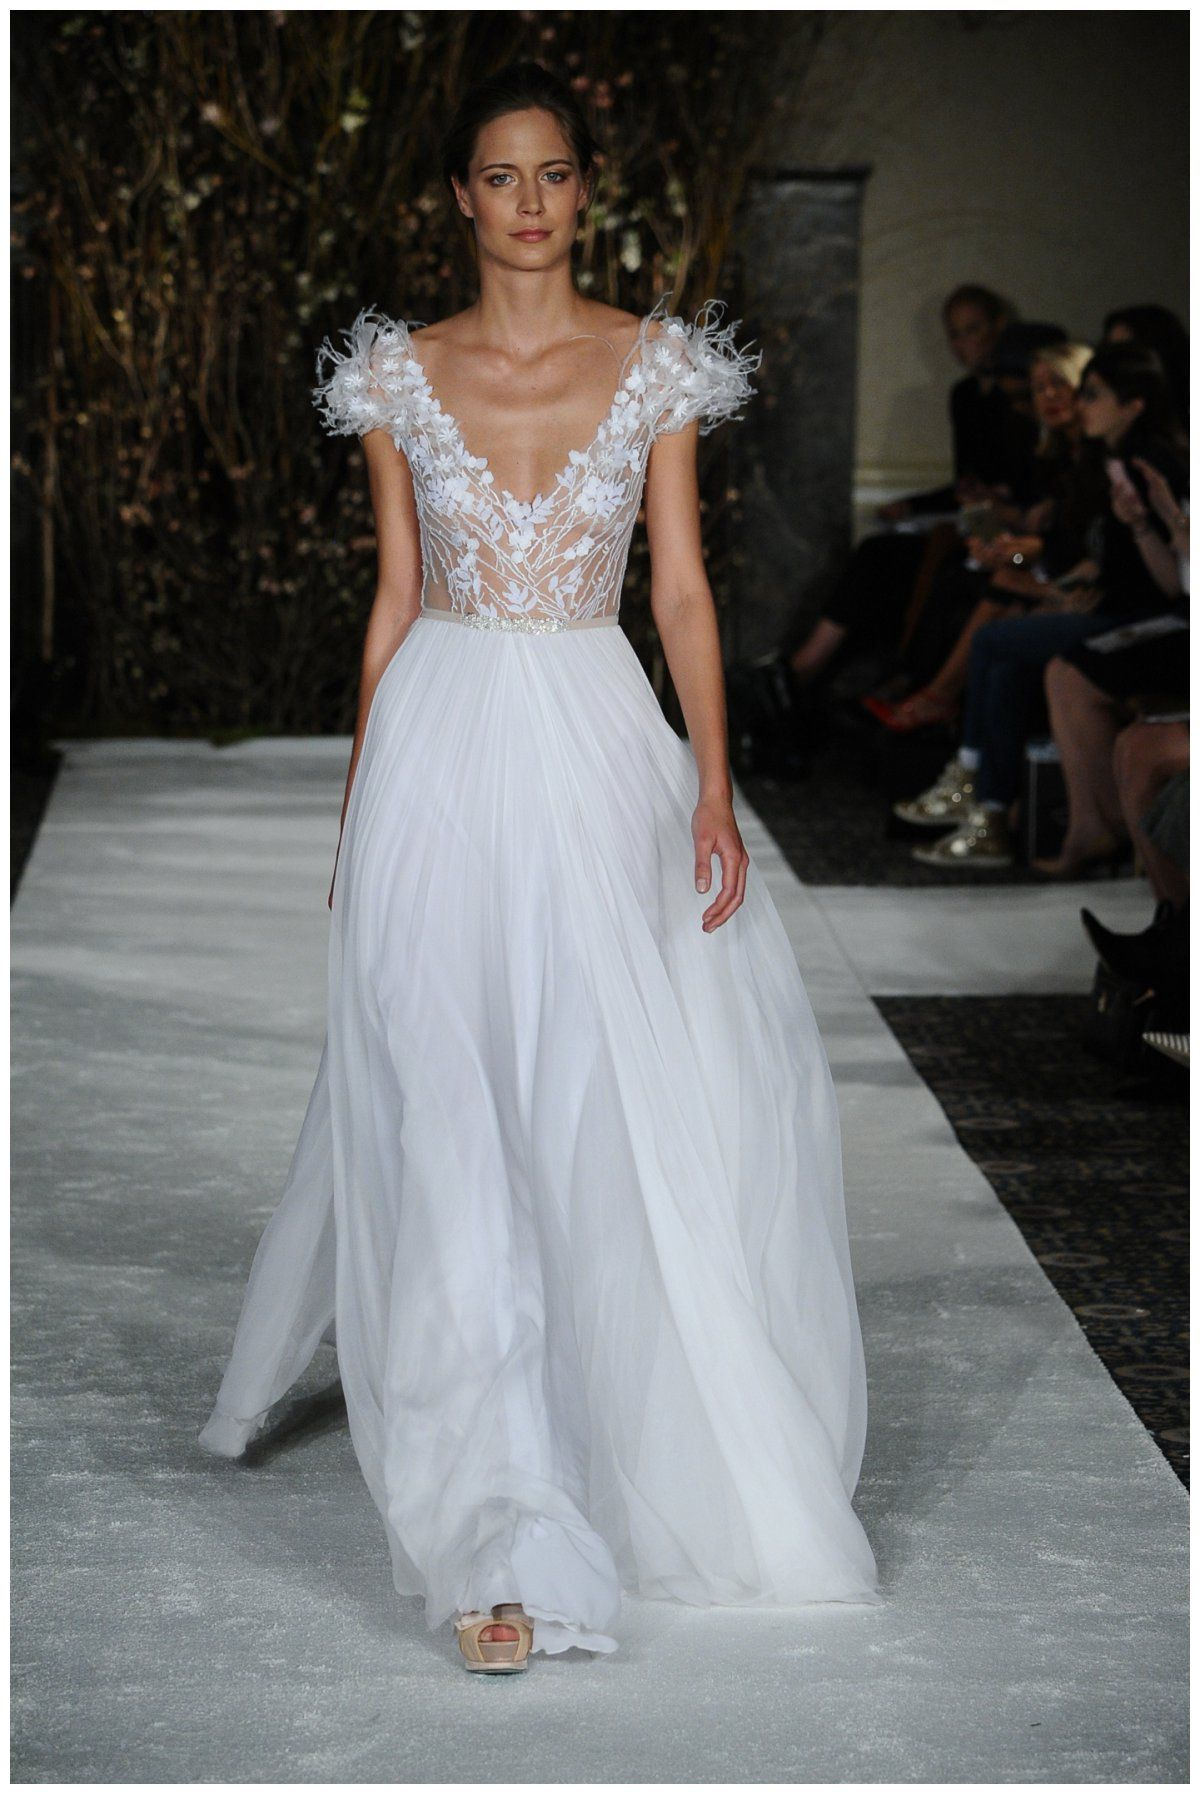 Wedding Dress by Mira Zwillinger from the Spring 2017 collection ...